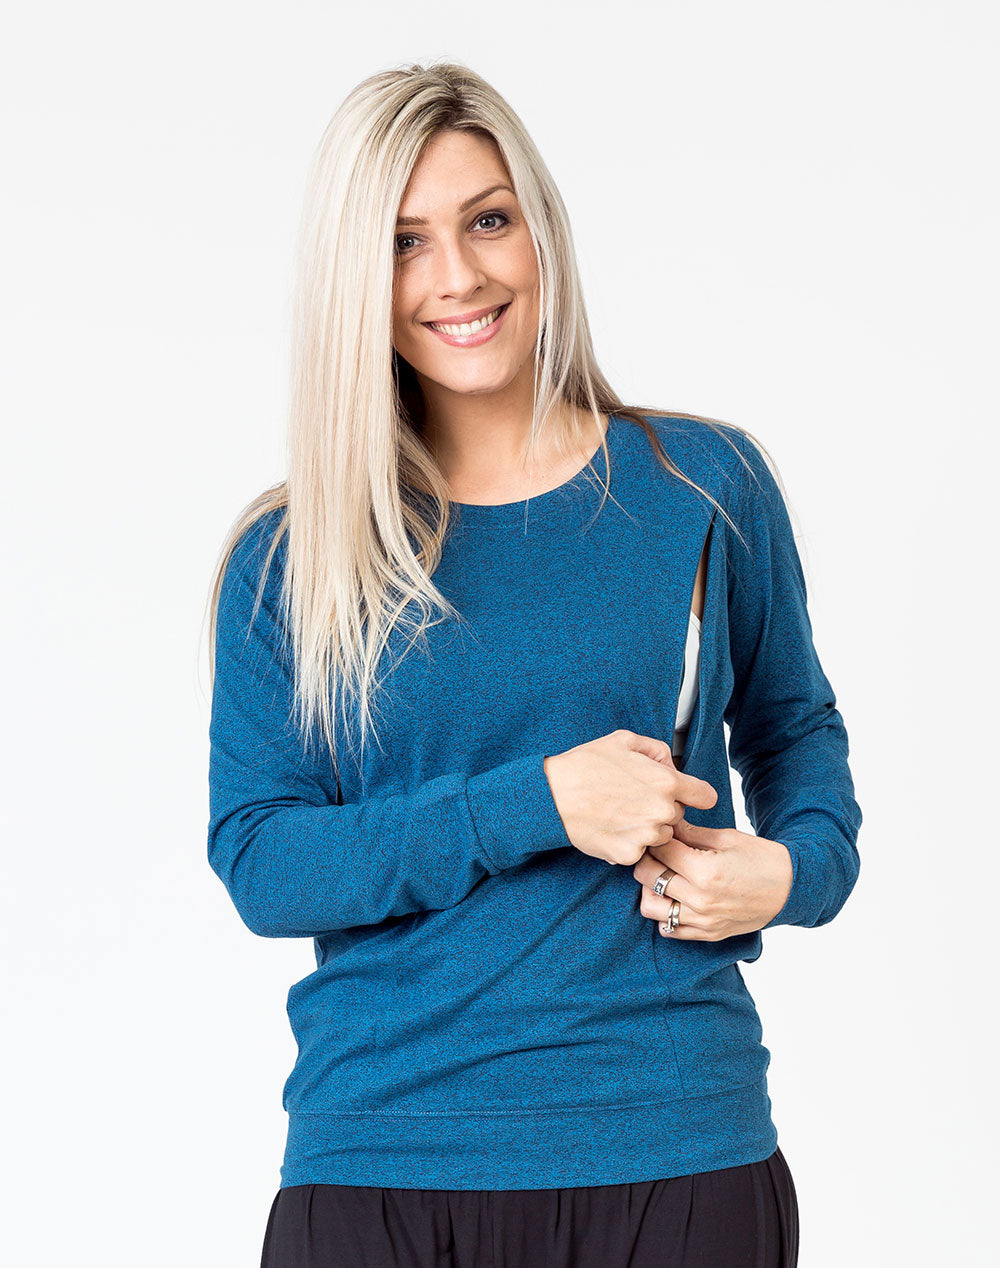 navy maternity top with long sleeves and invisible zip unzipped to breastfeed